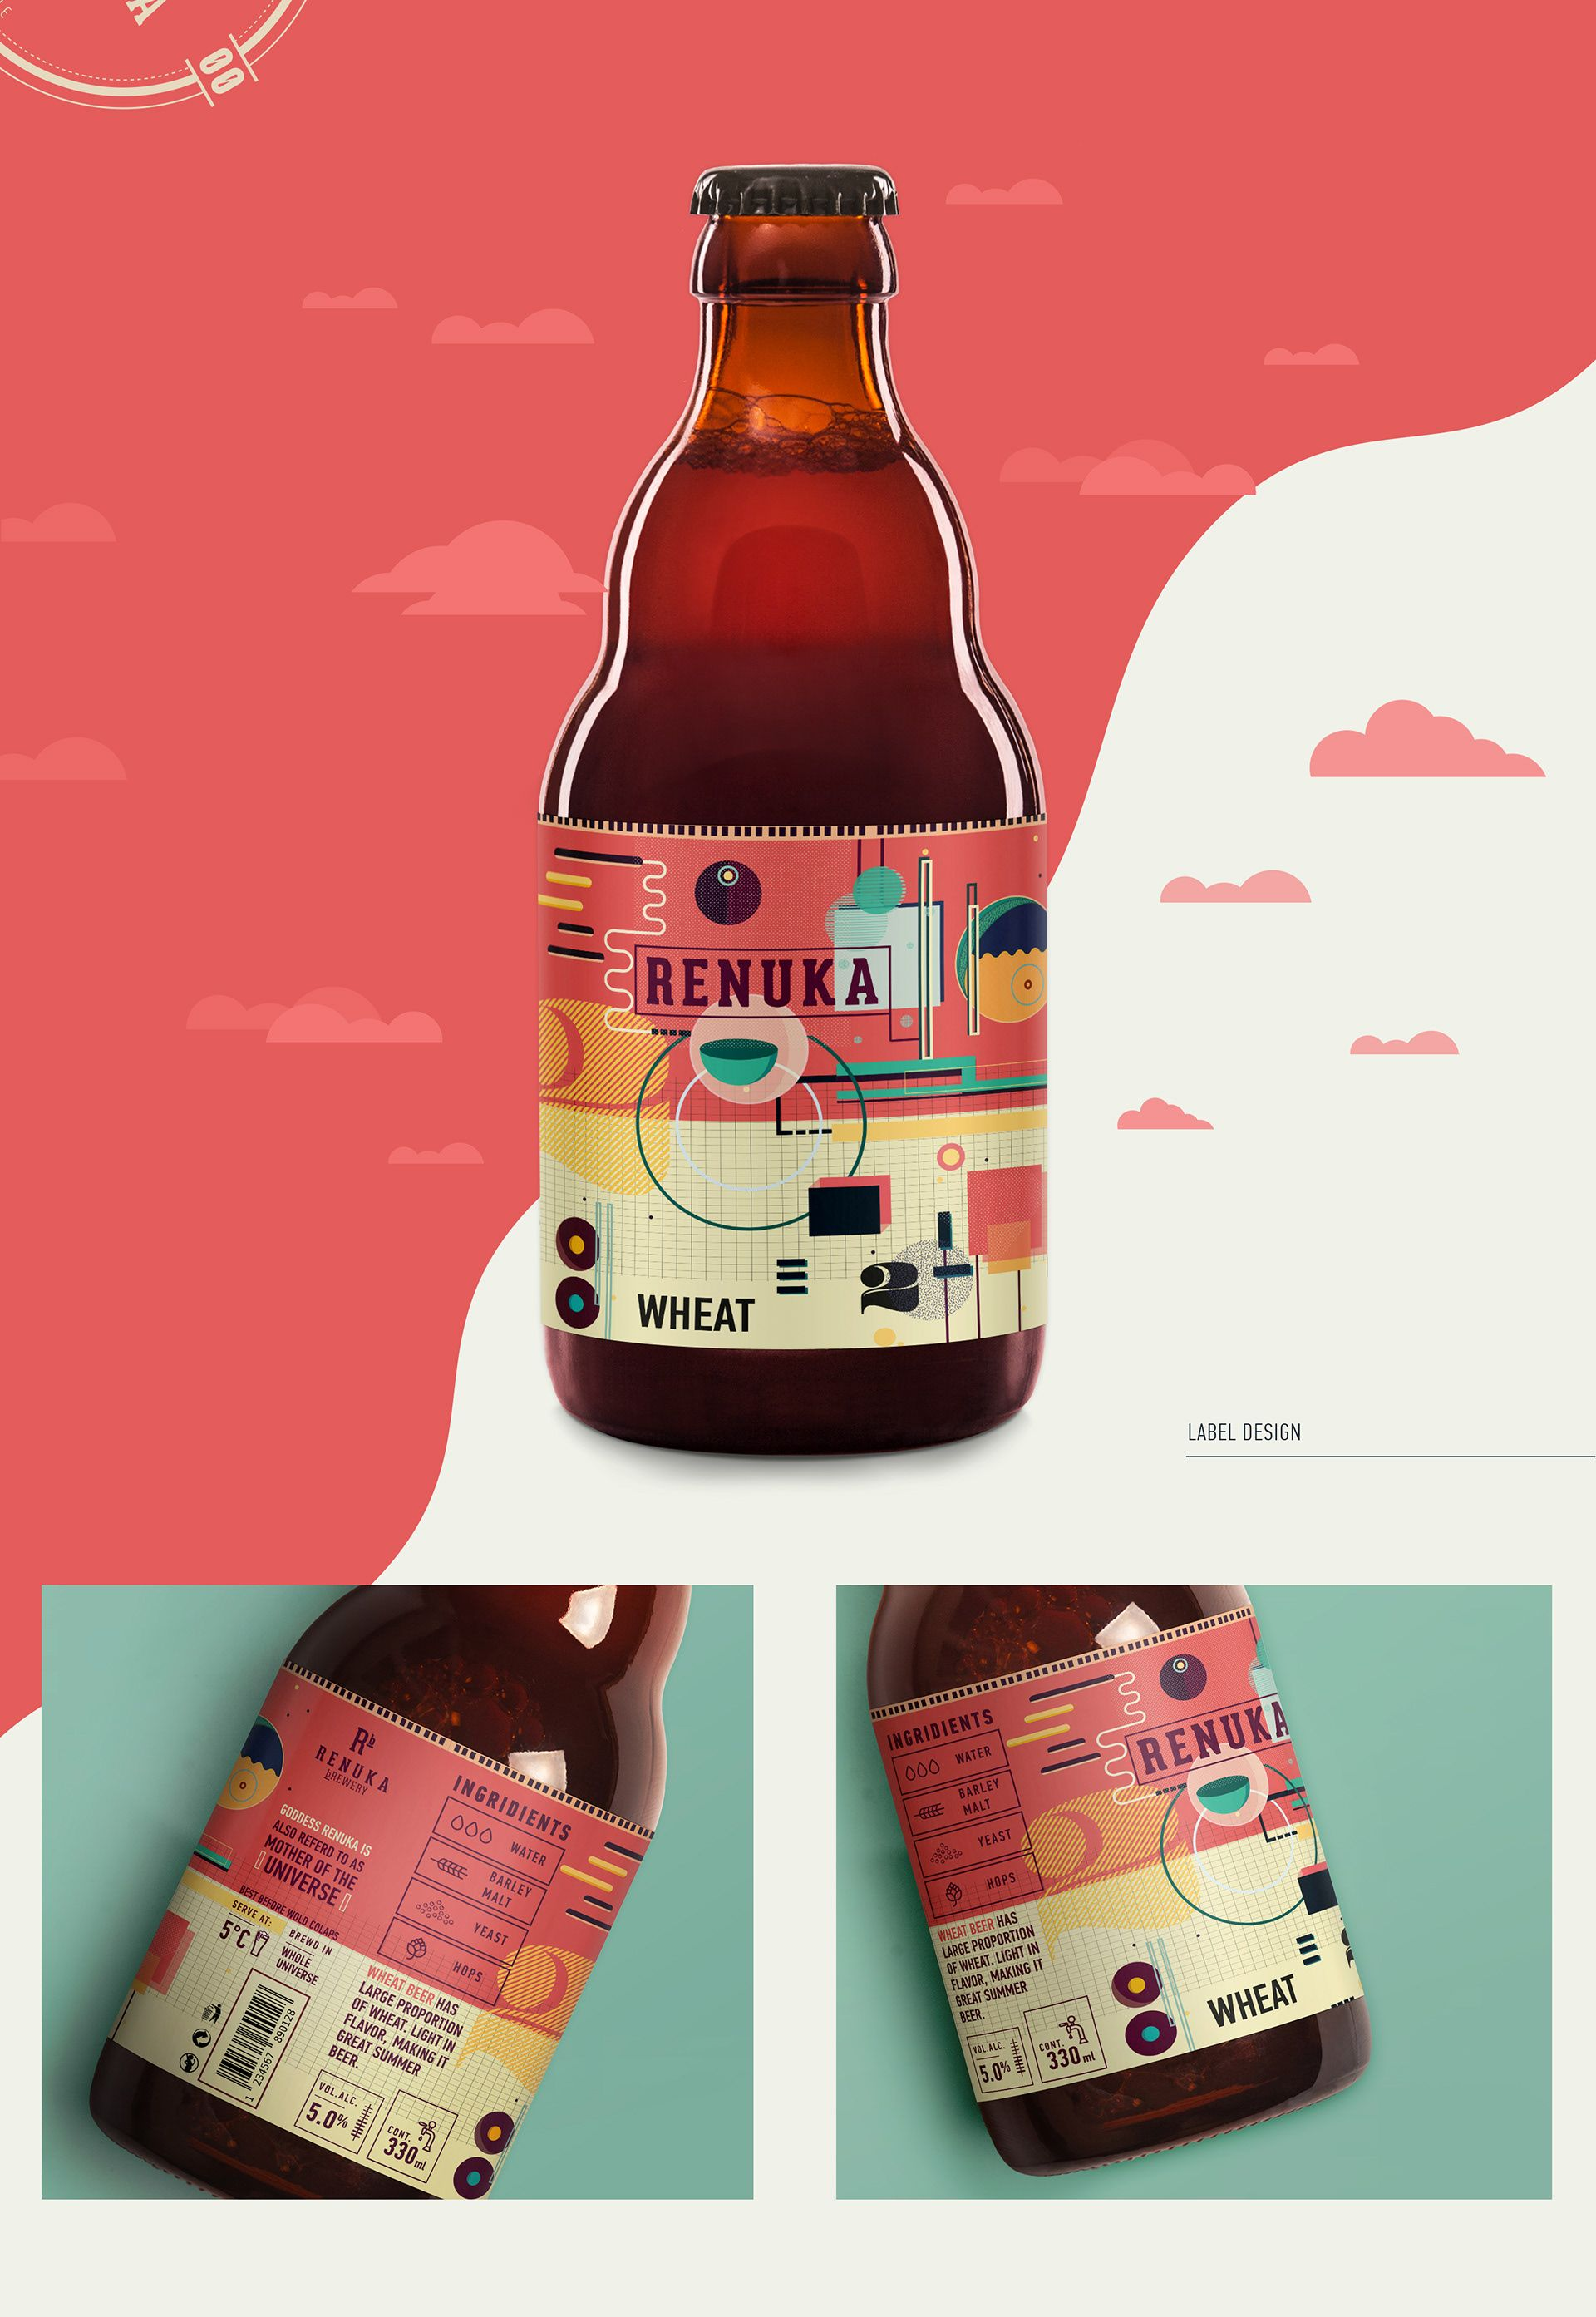 Renuka Brewery Branding Packaging On Behance Brand Packaging Branding Packaging